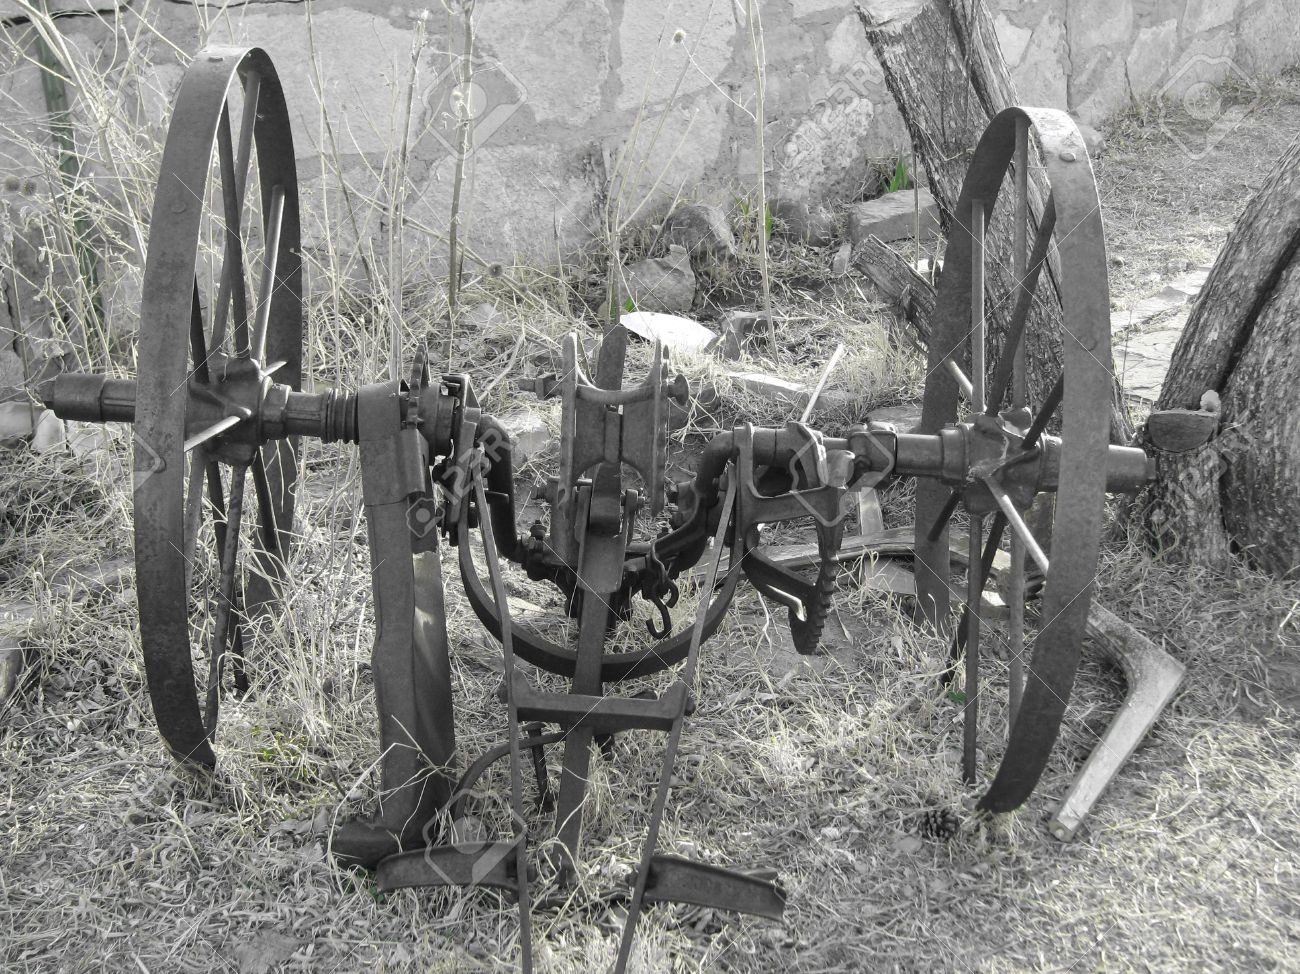 Black And White Antique Farm Equipment Stock Photo Picture And